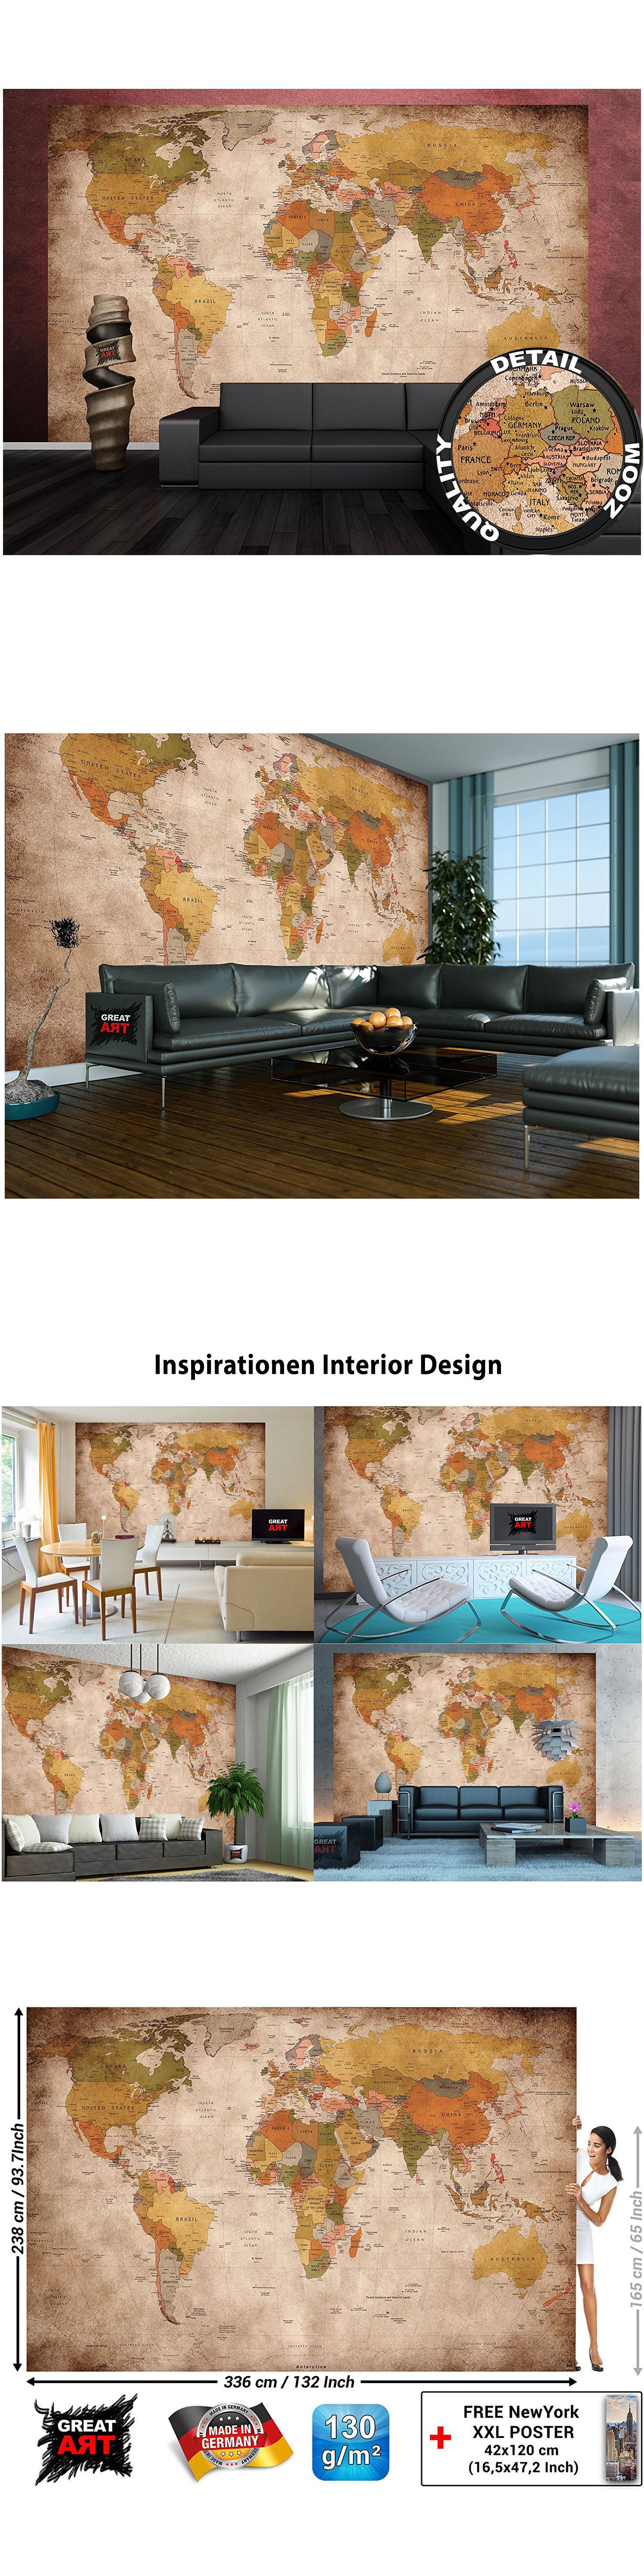 Household items xlarge world wall map vintage home decor art household items xlarge world wall map vintage home decor art painting classic mural dining room gumiabroncs Gallery